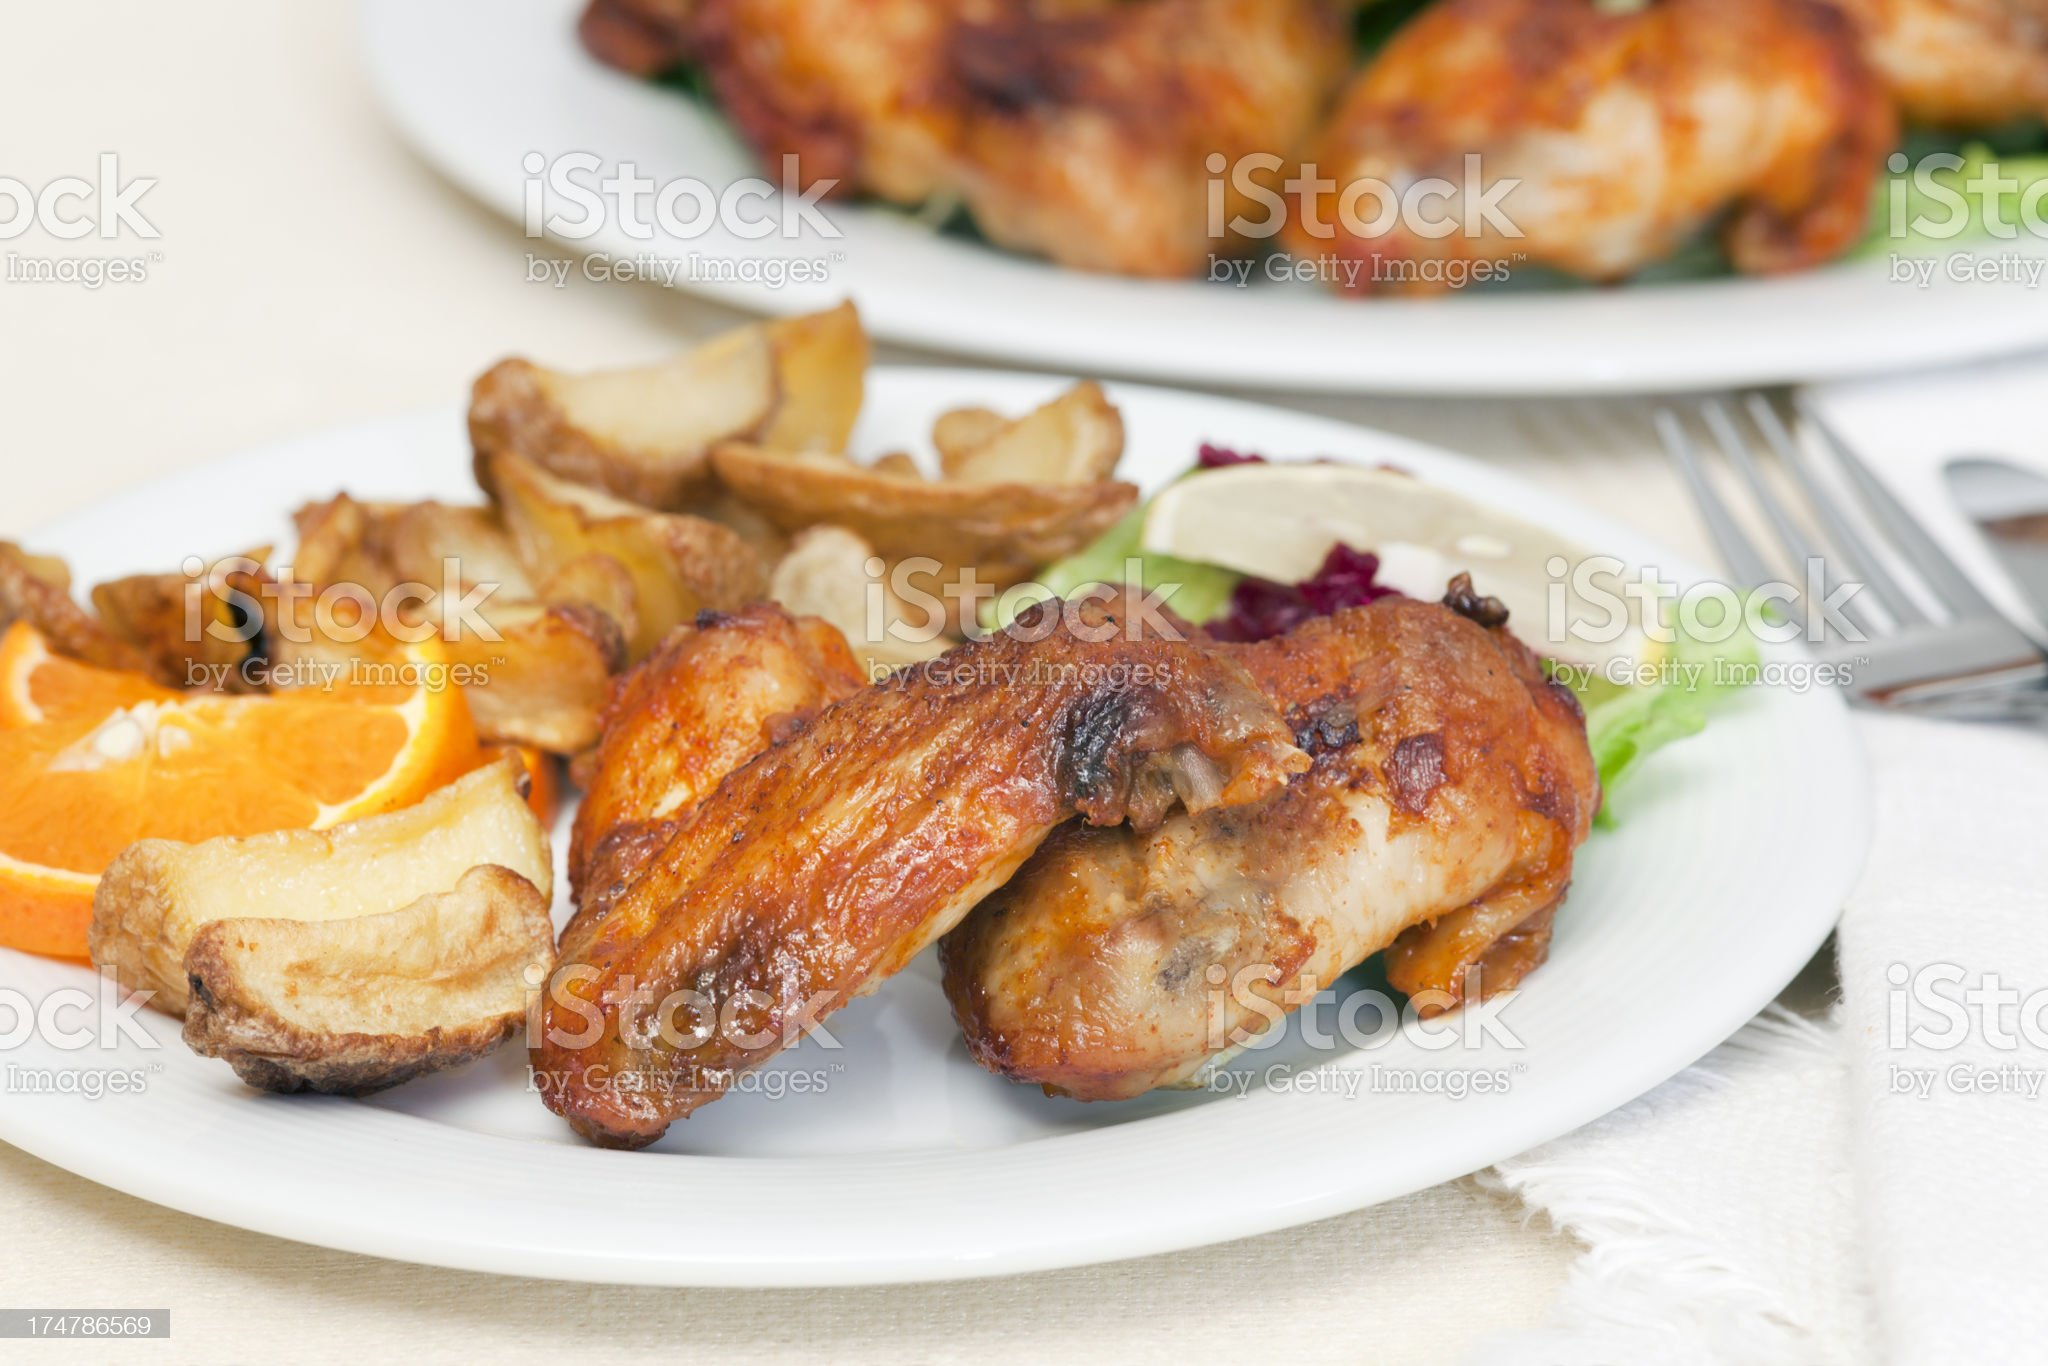 Chicken wings with fried potatoes and garnish on plate royalty-free stock photo